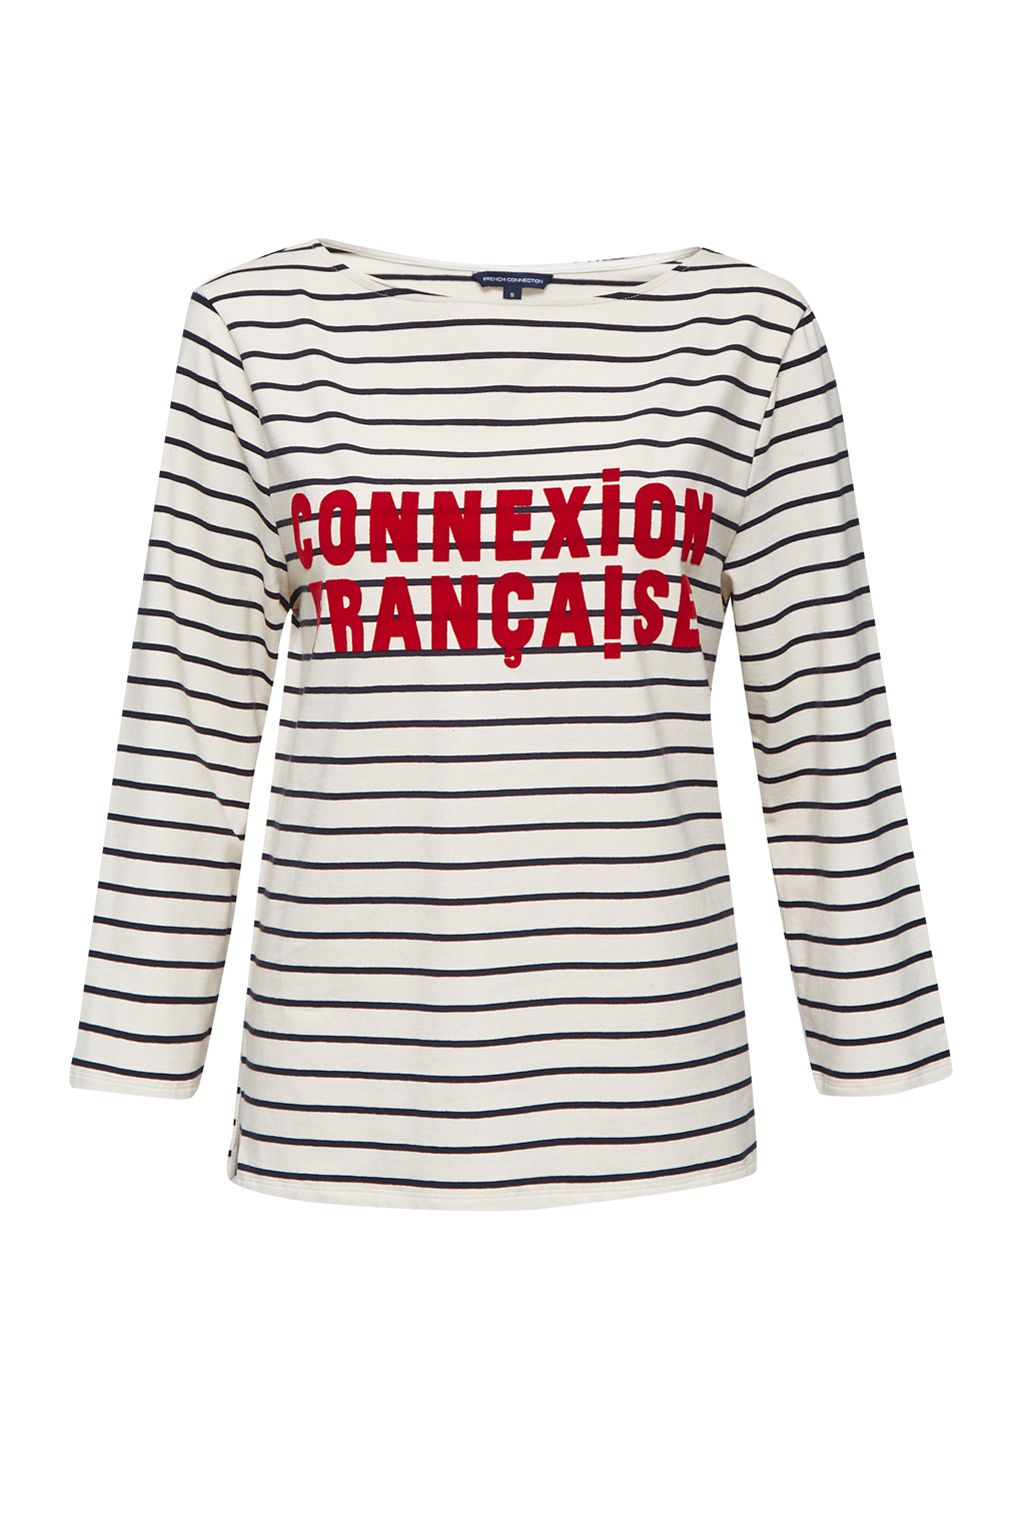 French Connection Connexion Francaise Striped T-shirt, Cream